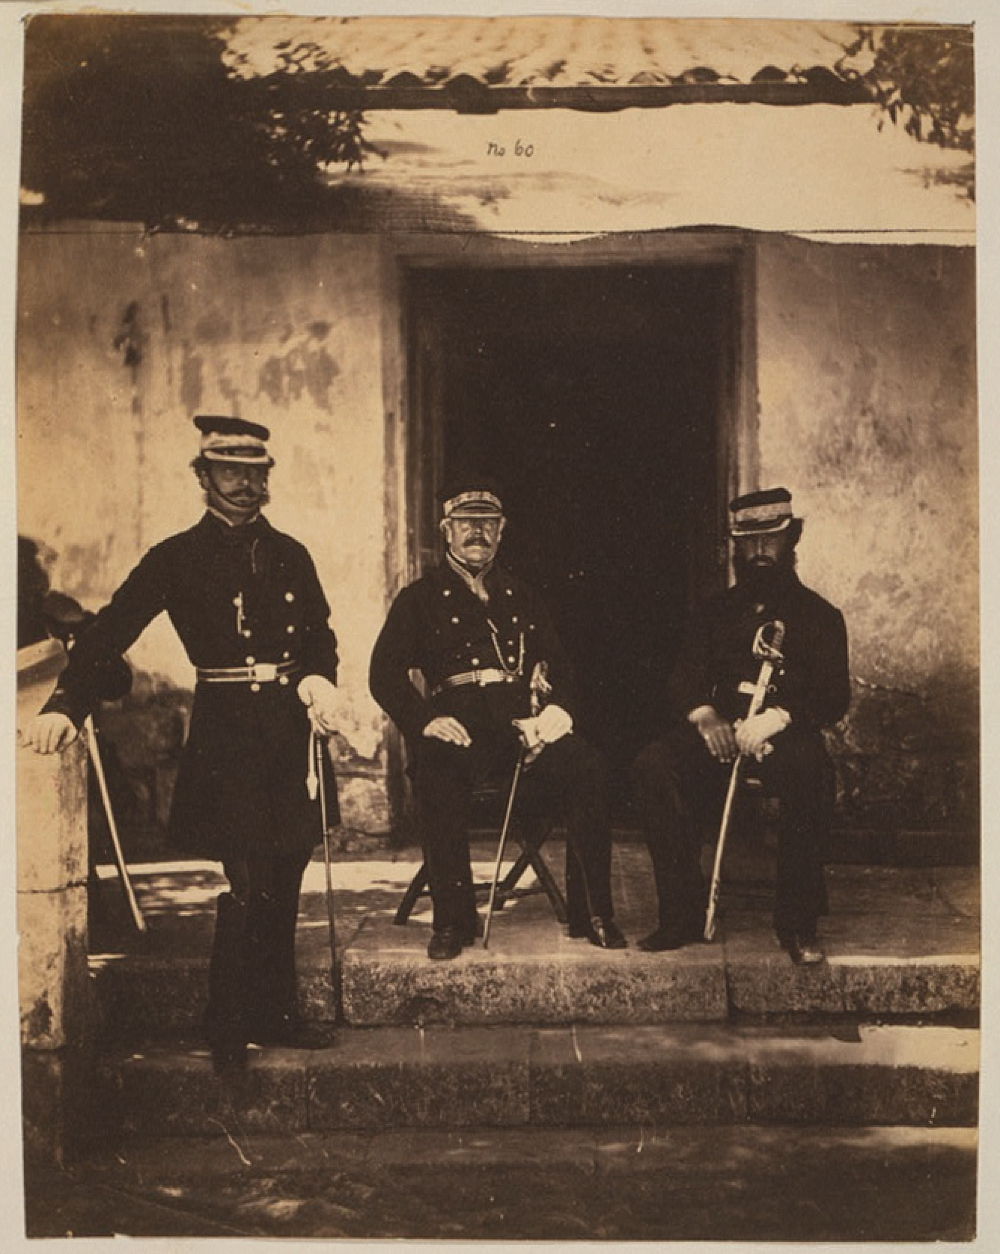 Brigadier General Lockyer & two of his staff